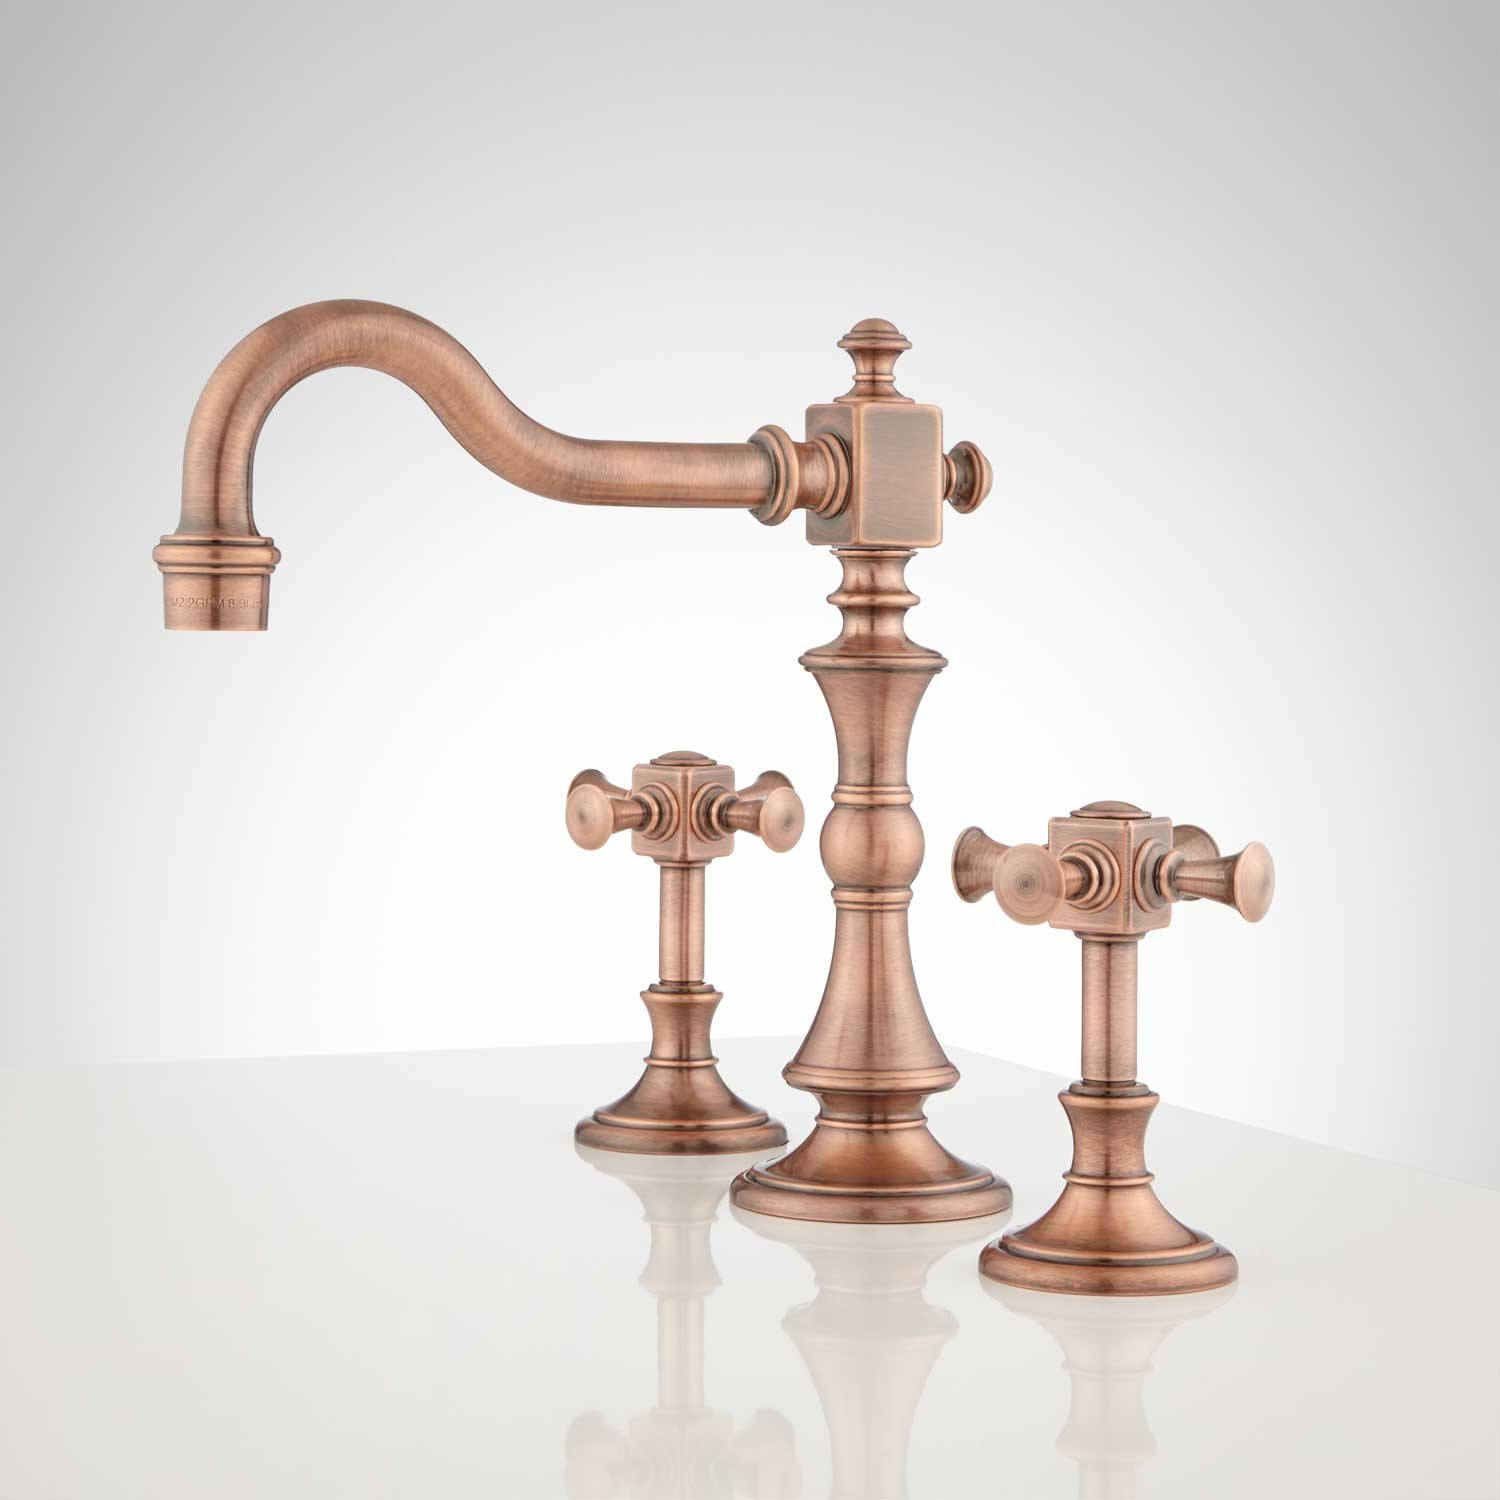 Epic Vintage Widespread Bathroom Faucet - Cross Handles - Bathroom intended for Review Cross Handle Bathroom Faucet